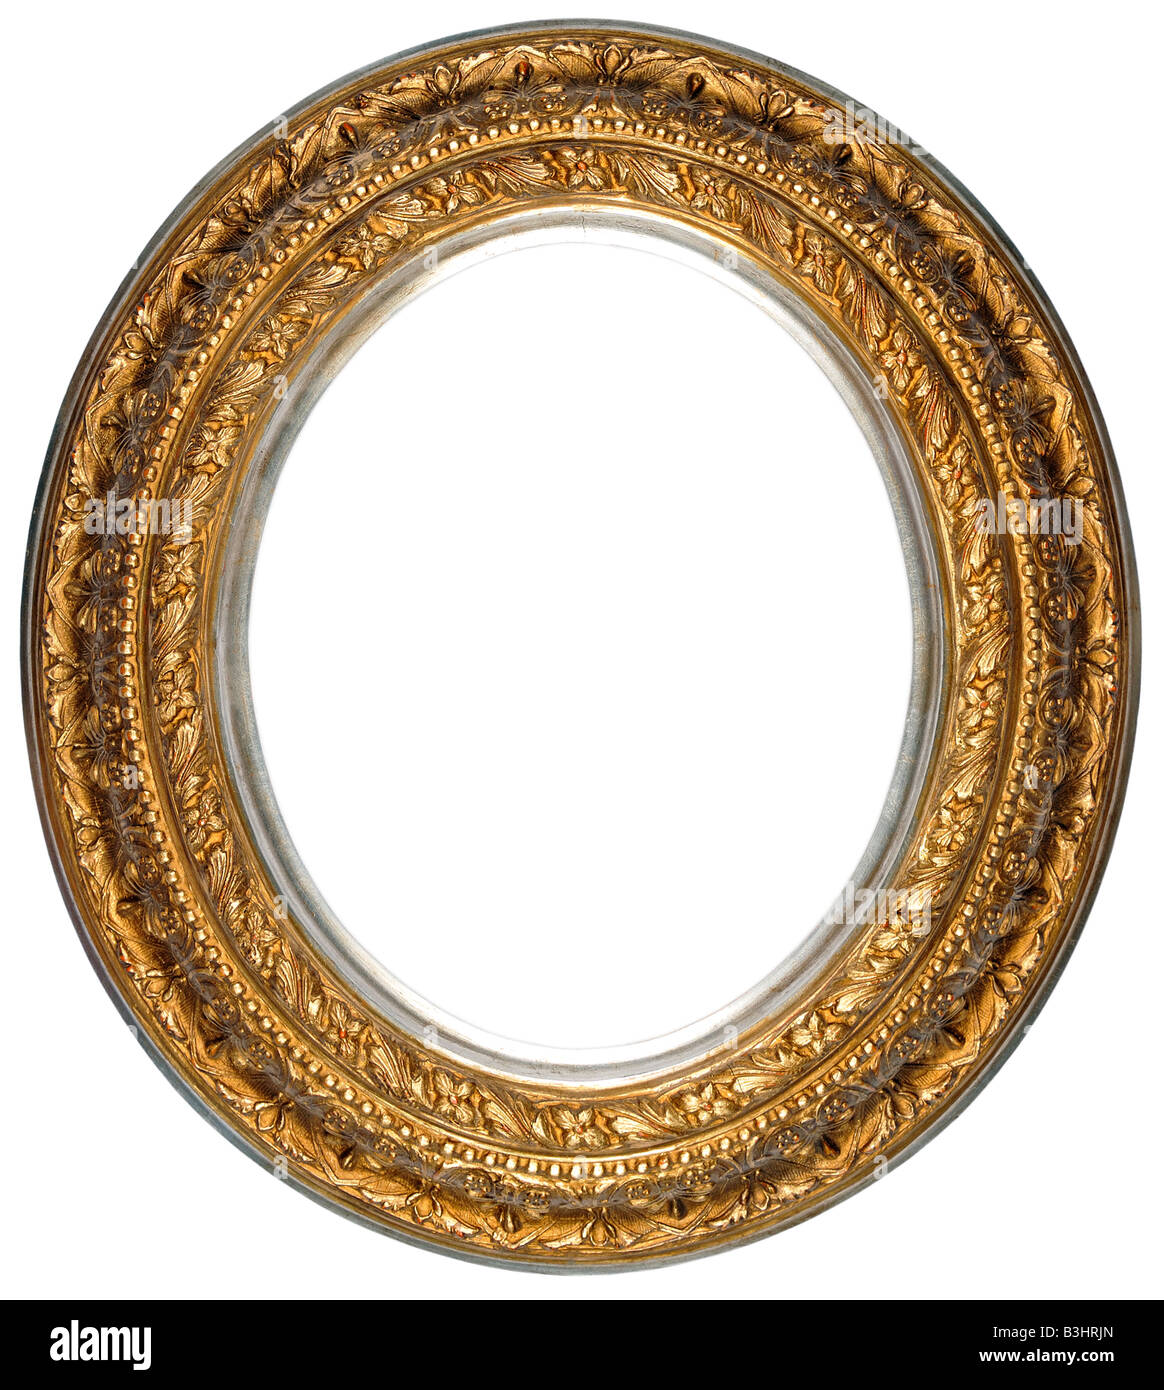 Antique Oval Frame Stock Photos & Antique Oval Frame Stock Images ...